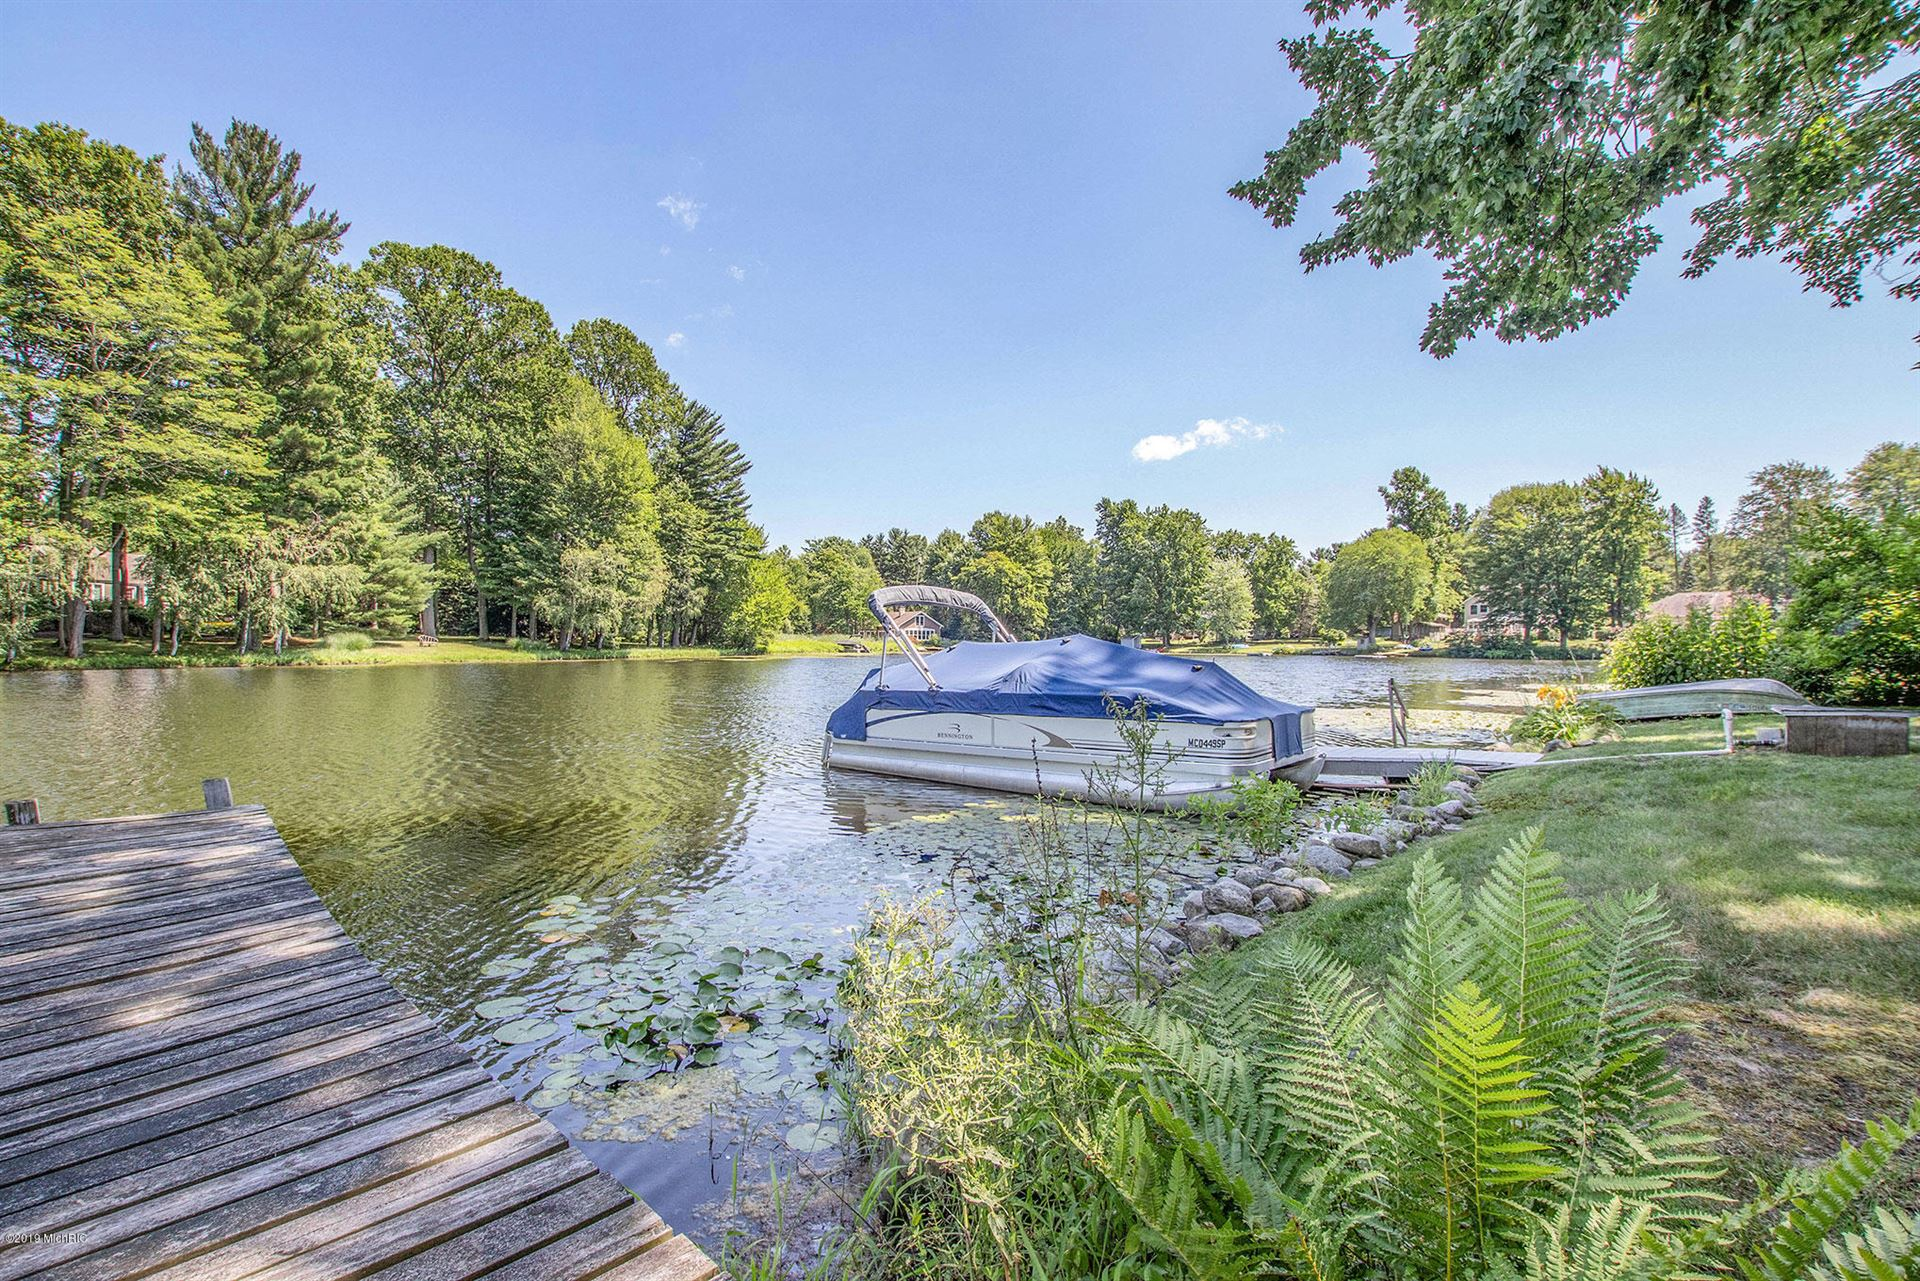 3635 Vienna Stras Road, Holland, MI 49423 - MLS#: 21003840